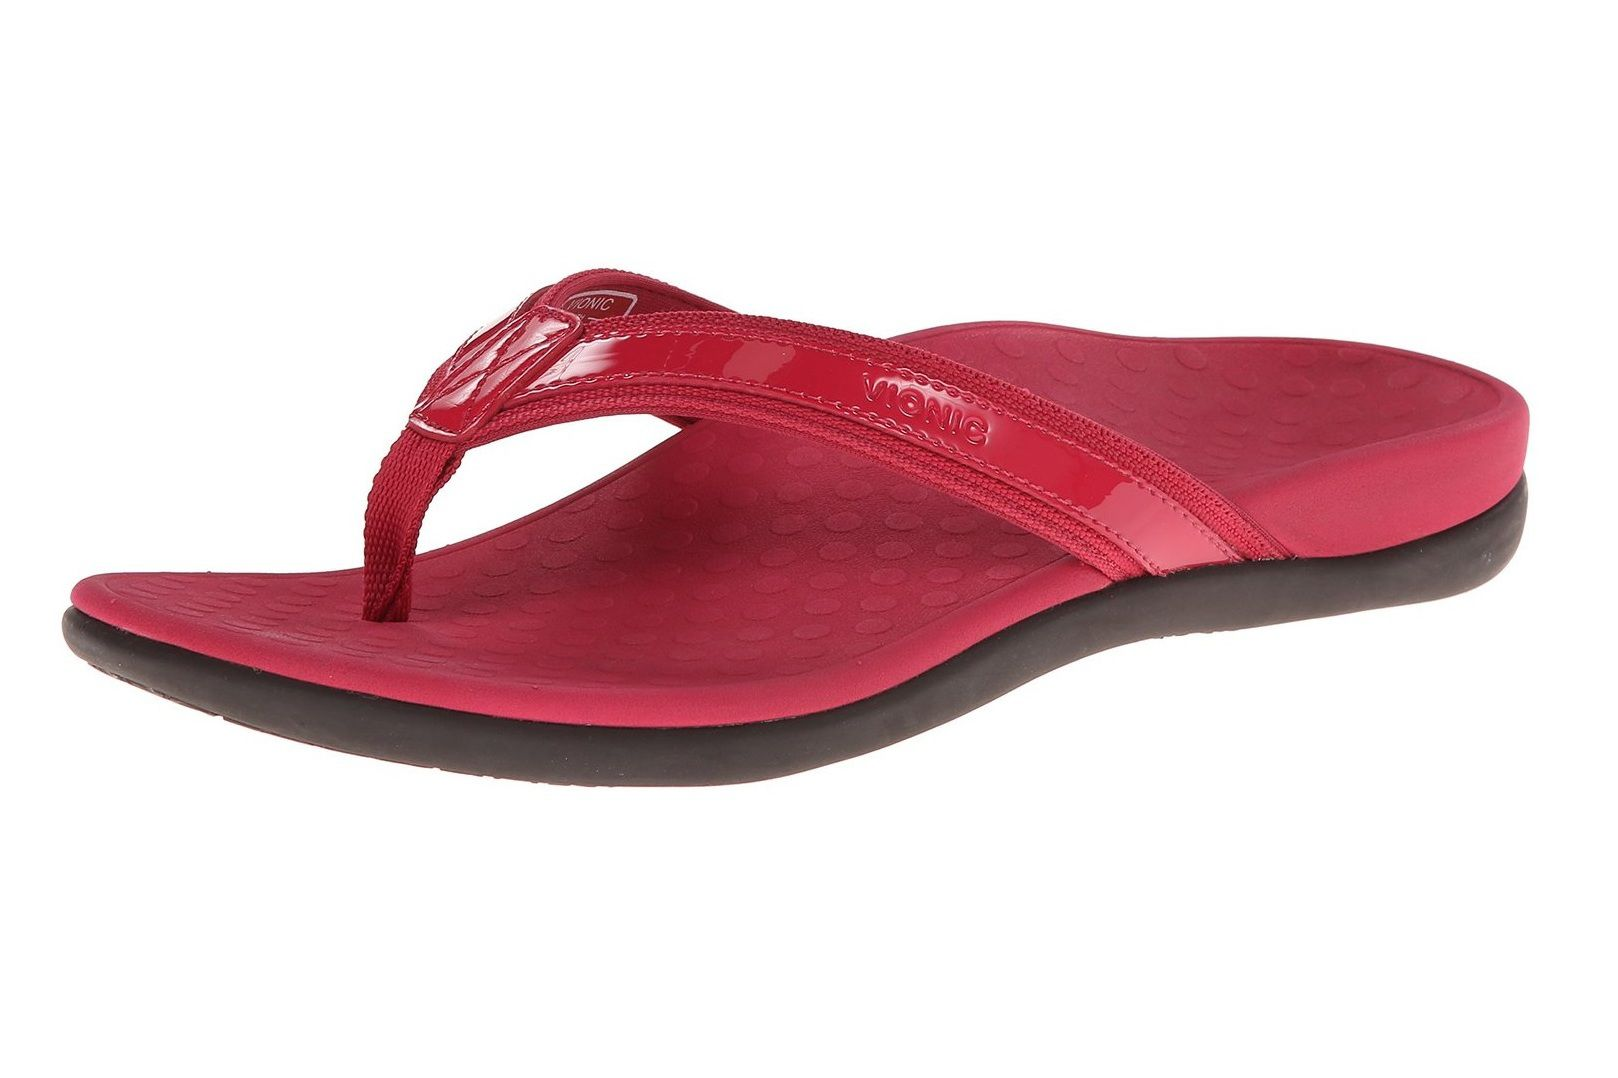 3ec15a61225a2 Best Flip Flops: Orthaheel Vionic Sandals and Flip Flops